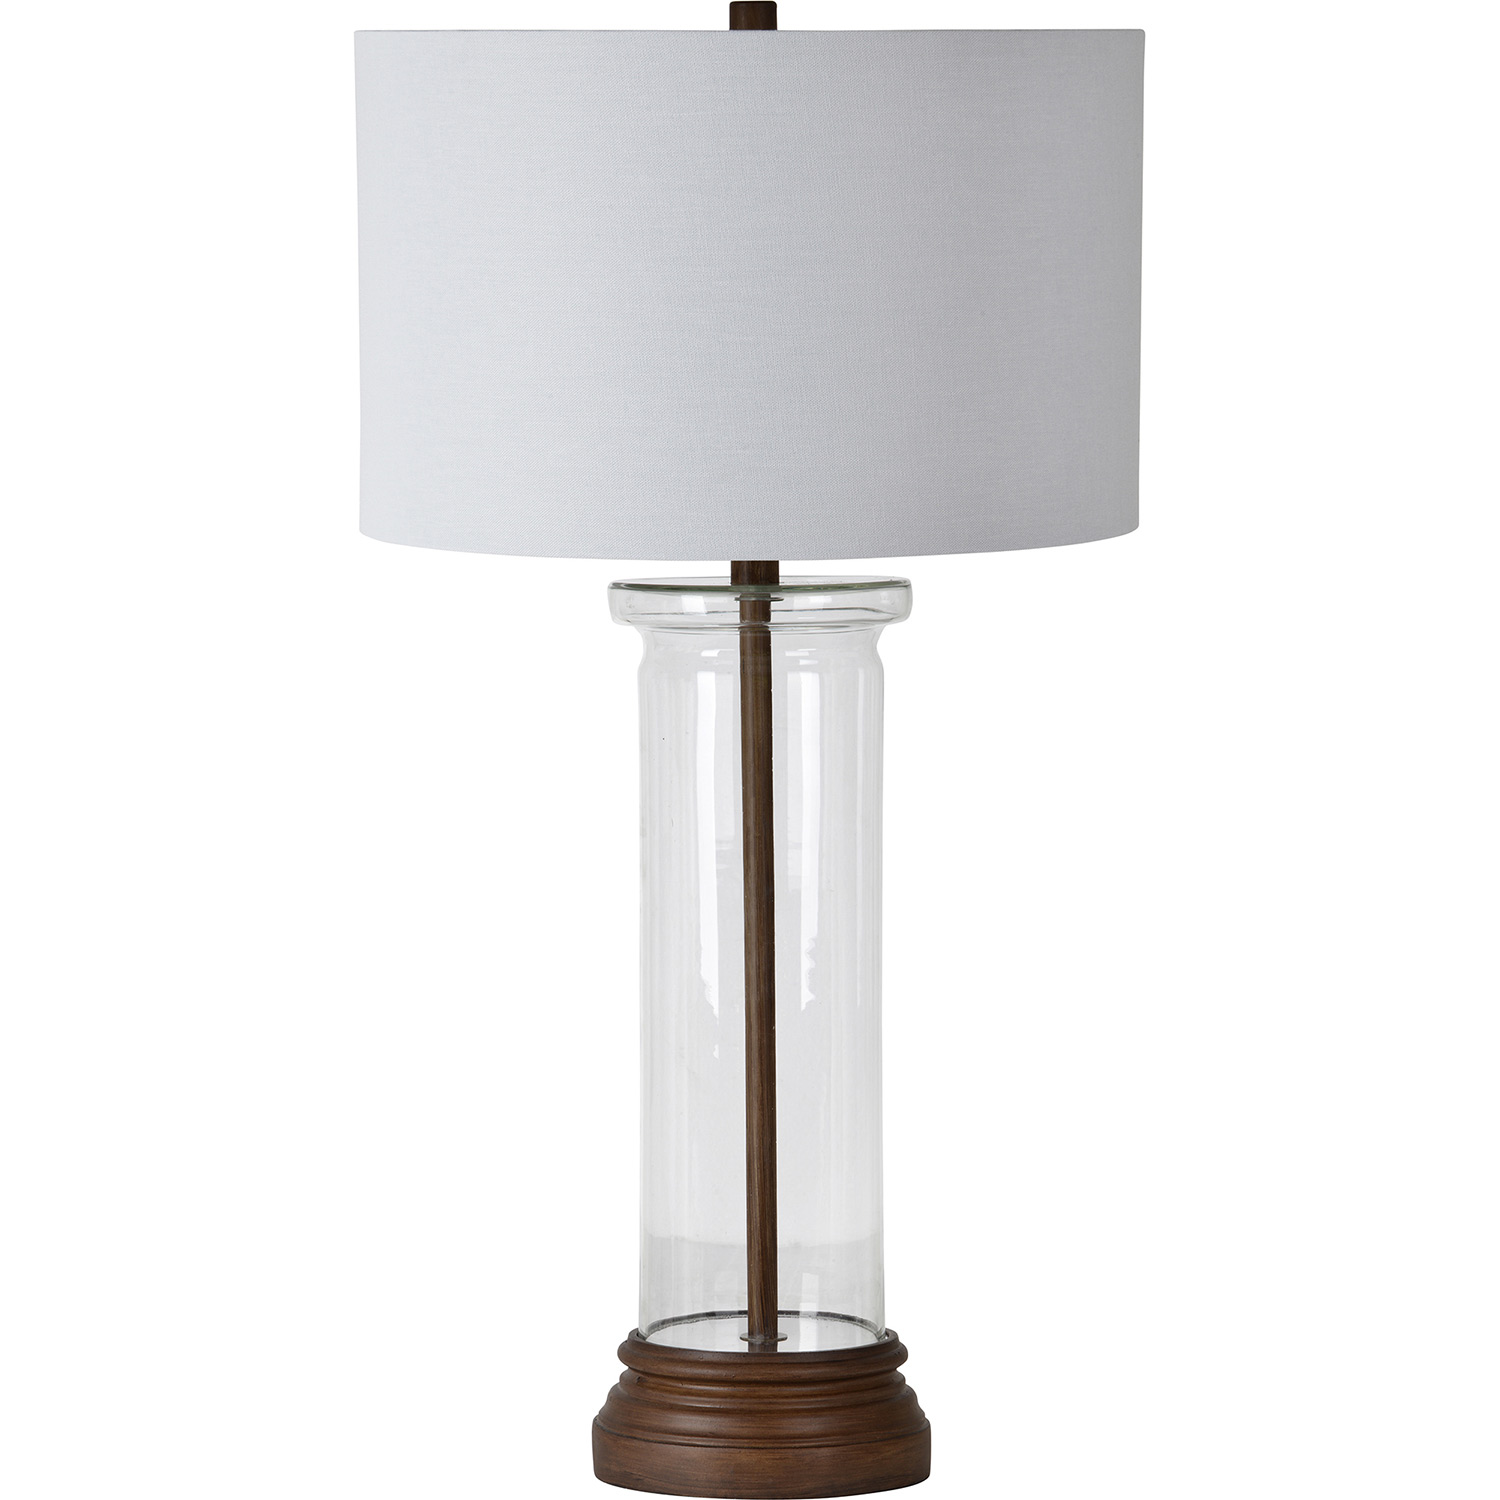 Ren-Wil Summerby Table Lamp - Wood Grain